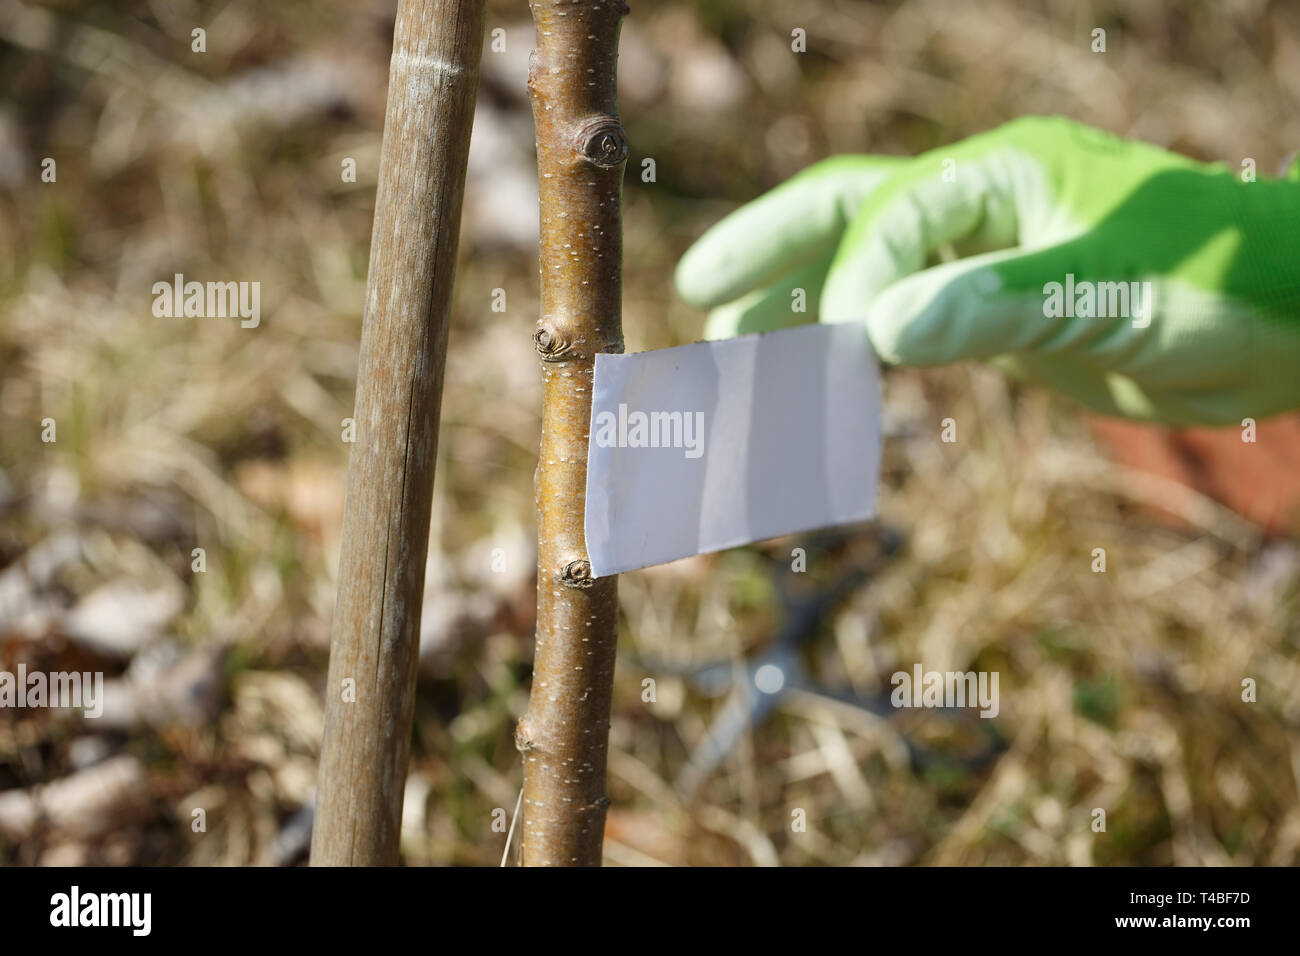 Gardener placing adhesive duct tape on tree trunk for ant protection. Insect protection, organic farming concept. - Stock Image